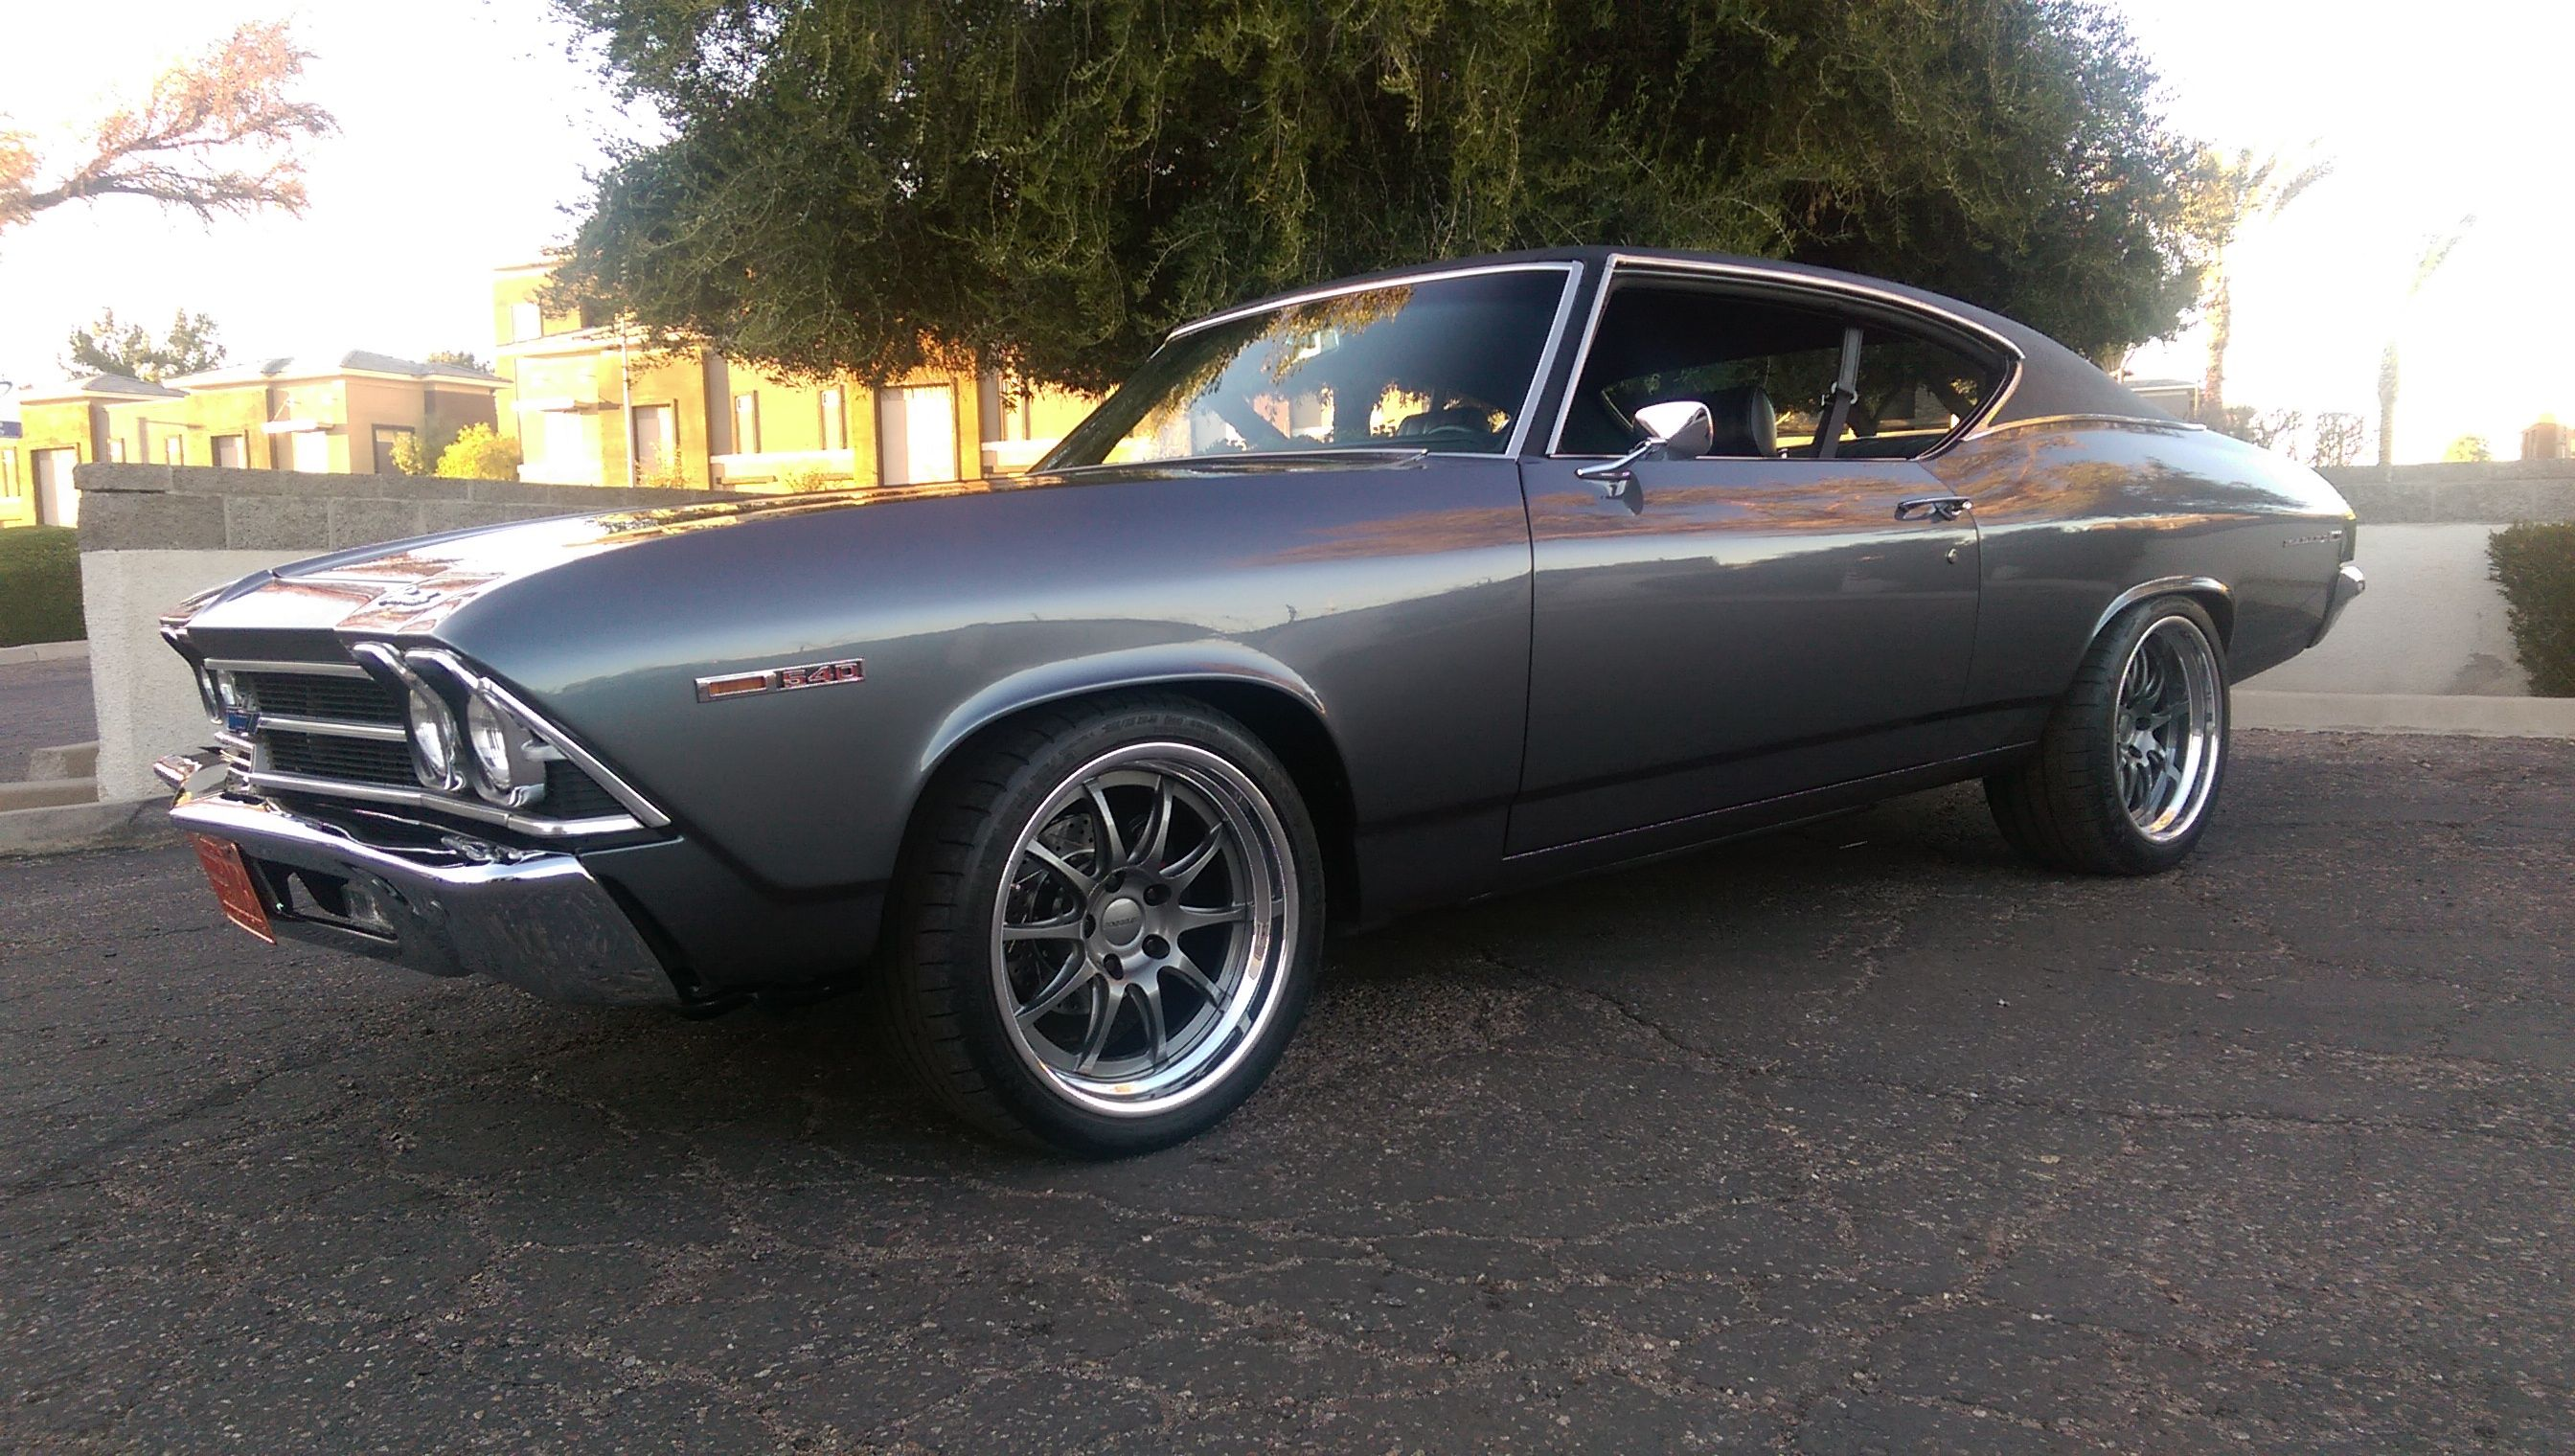 scott berry 39 s 39 69 chevelle malibu is powered by a custom built 600hp 650lb ft 540ci fuel. Black Bedroom Furniture Sets. Home Design Ideas